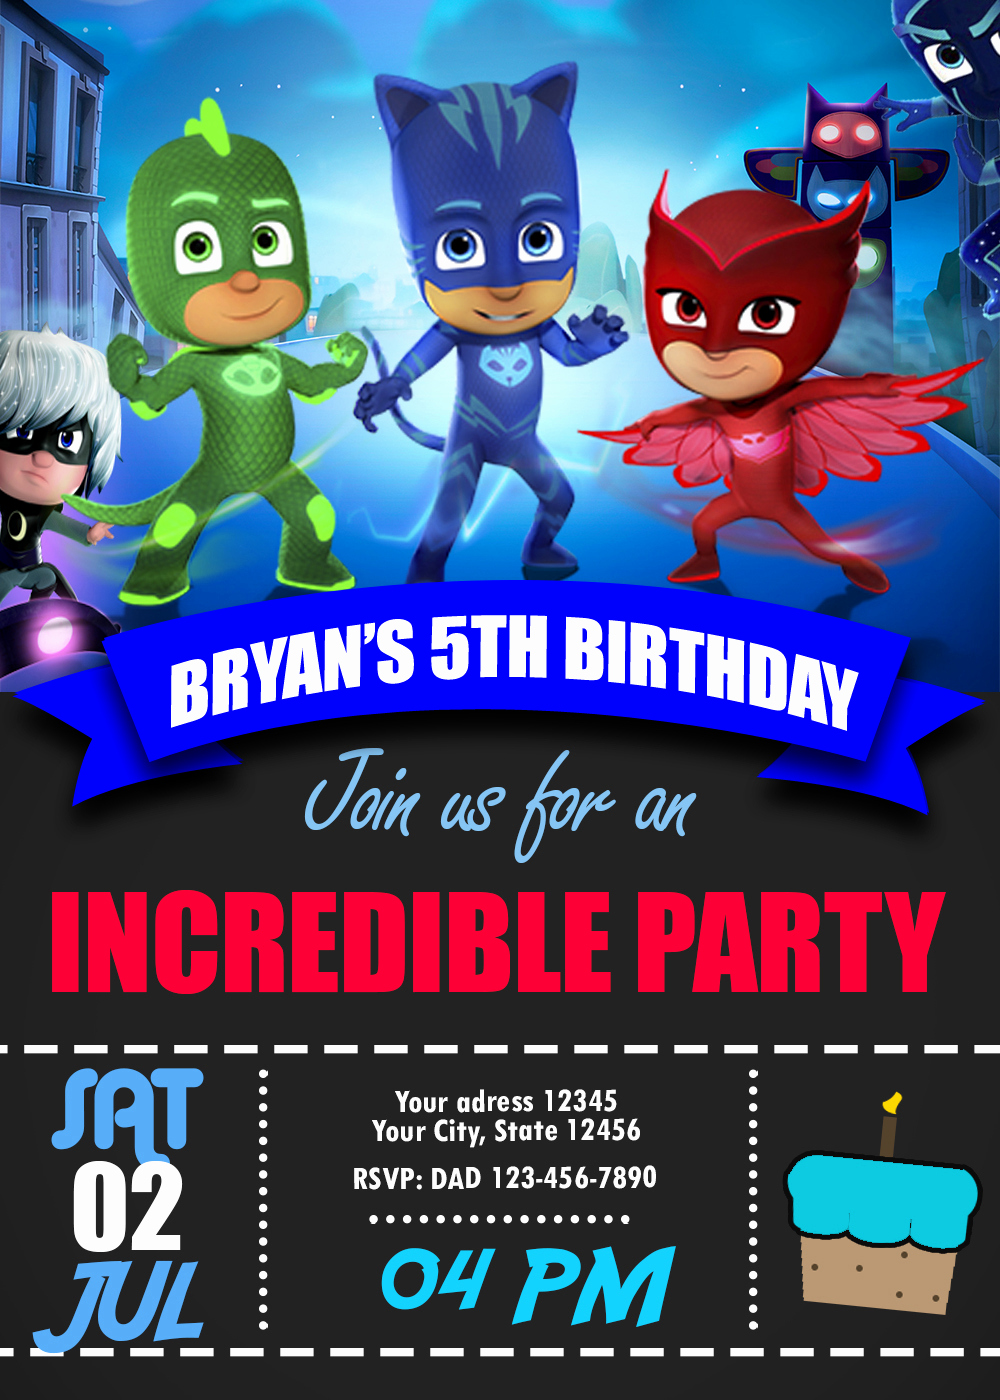 Pj Masks Invitation Template Free Elegant Blue Catboy Pj Masks Birthday Invitation Oscarsitosroom